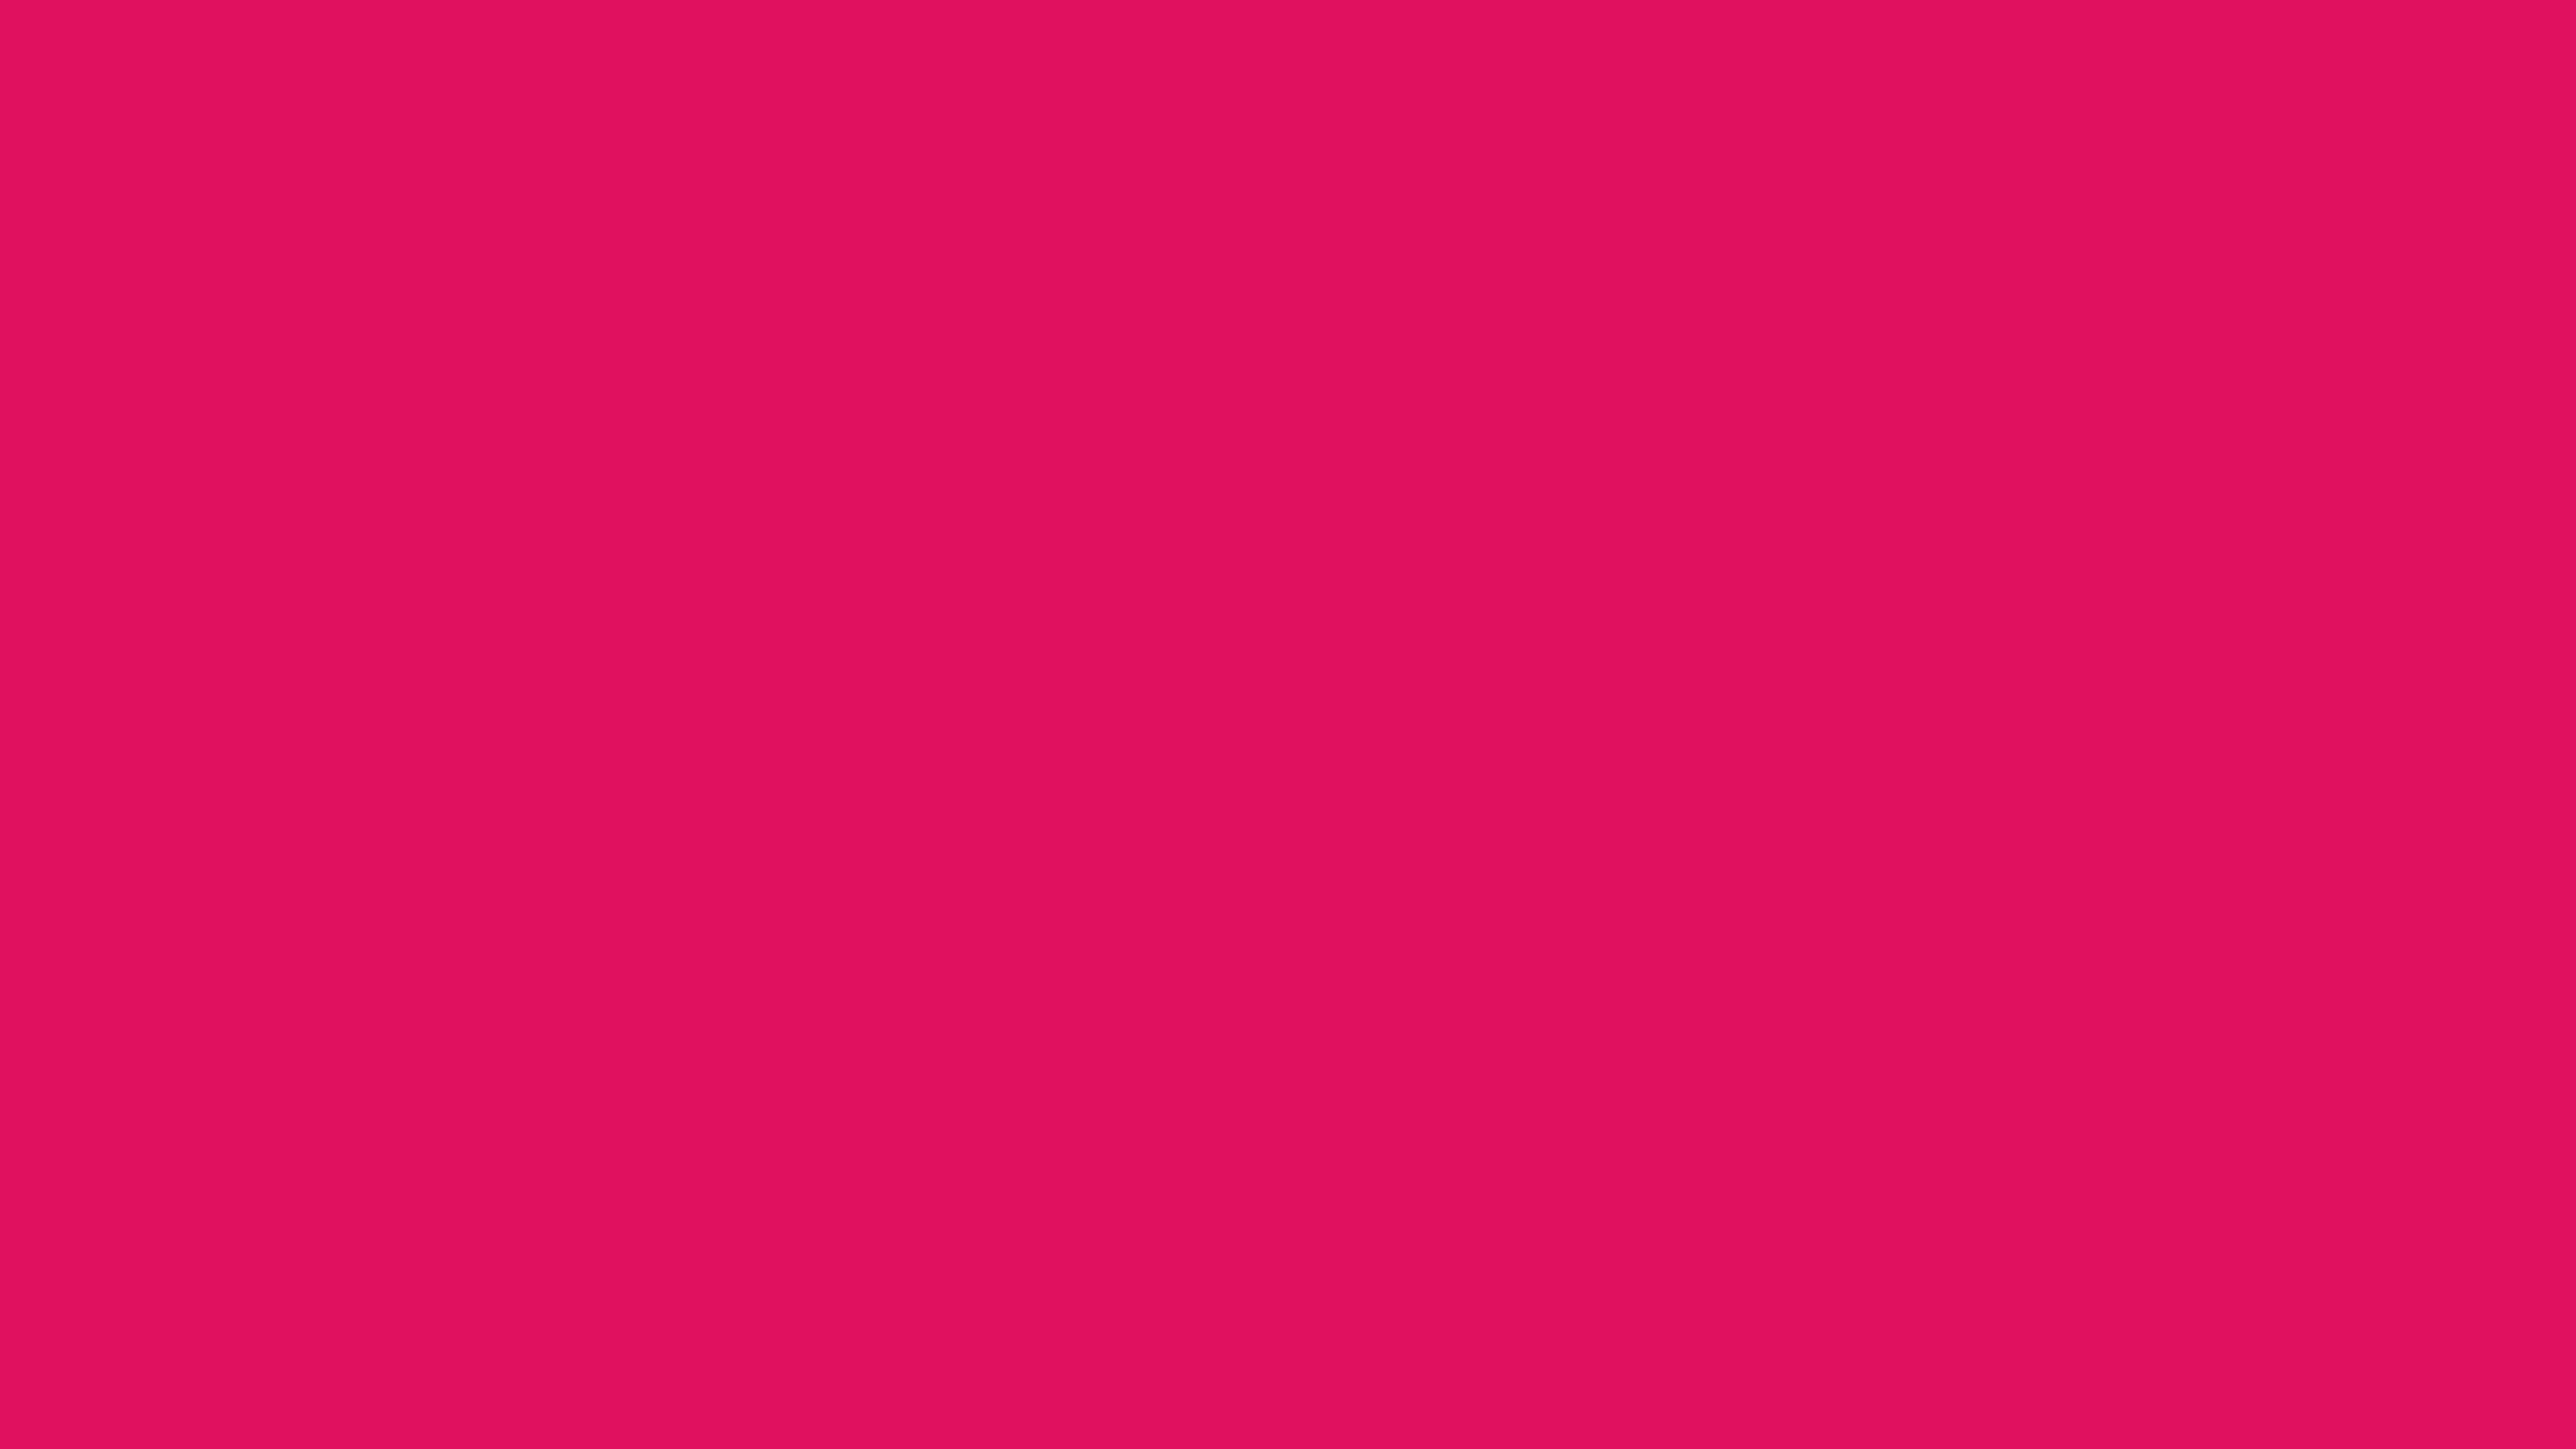 7680x4320 Ruby Solid Color Background